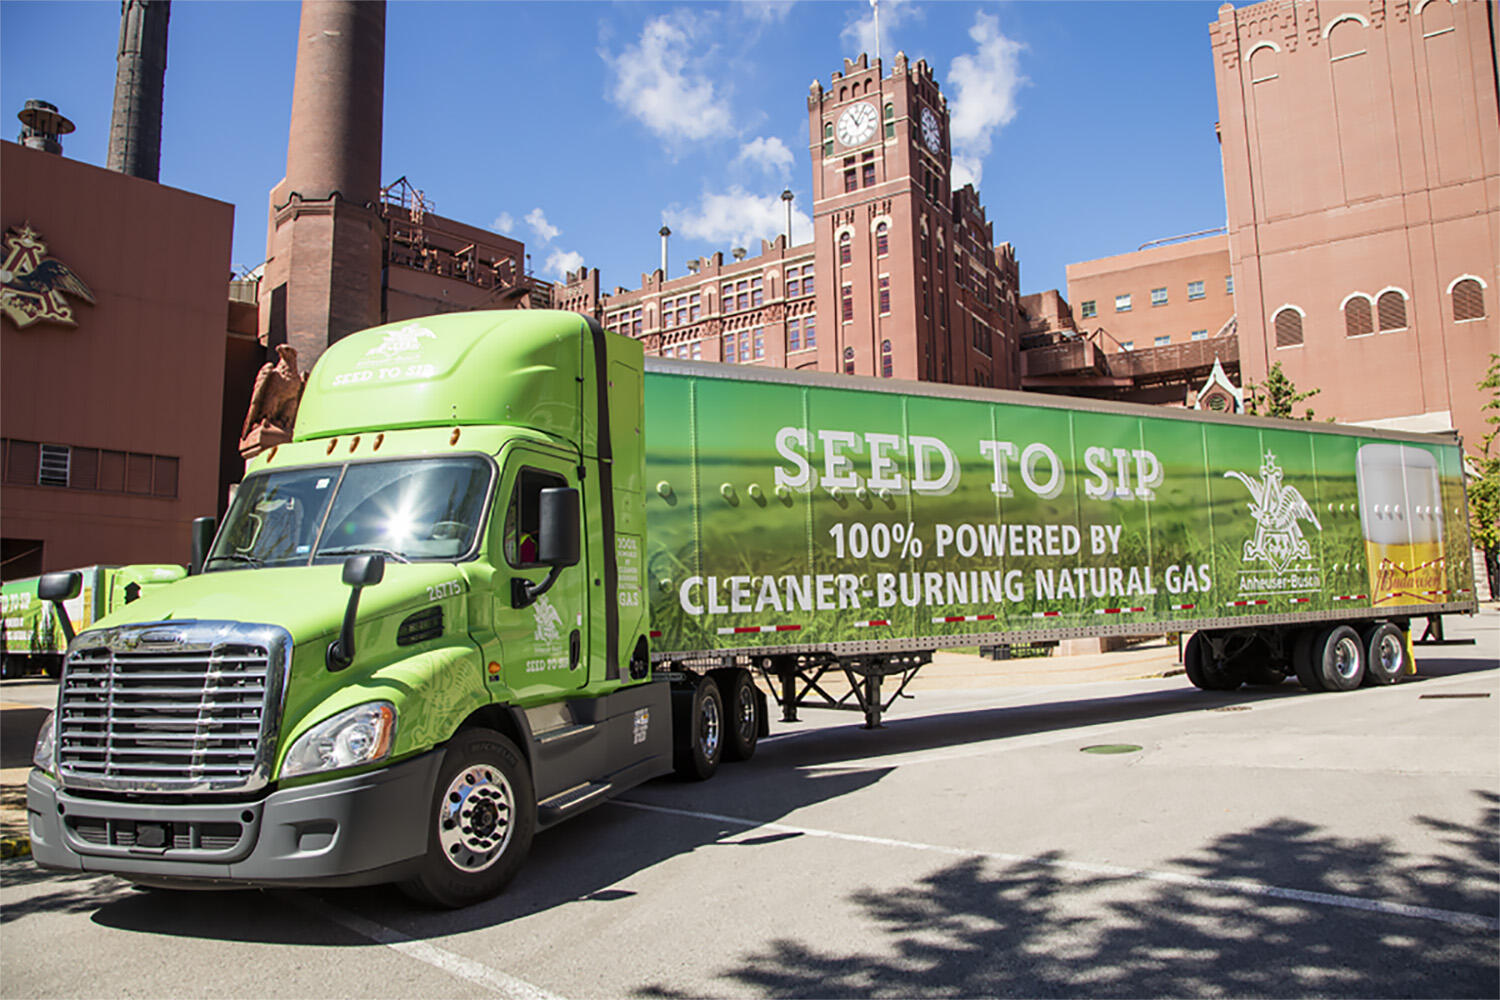 Budweiser semi powered by renewable natural gas